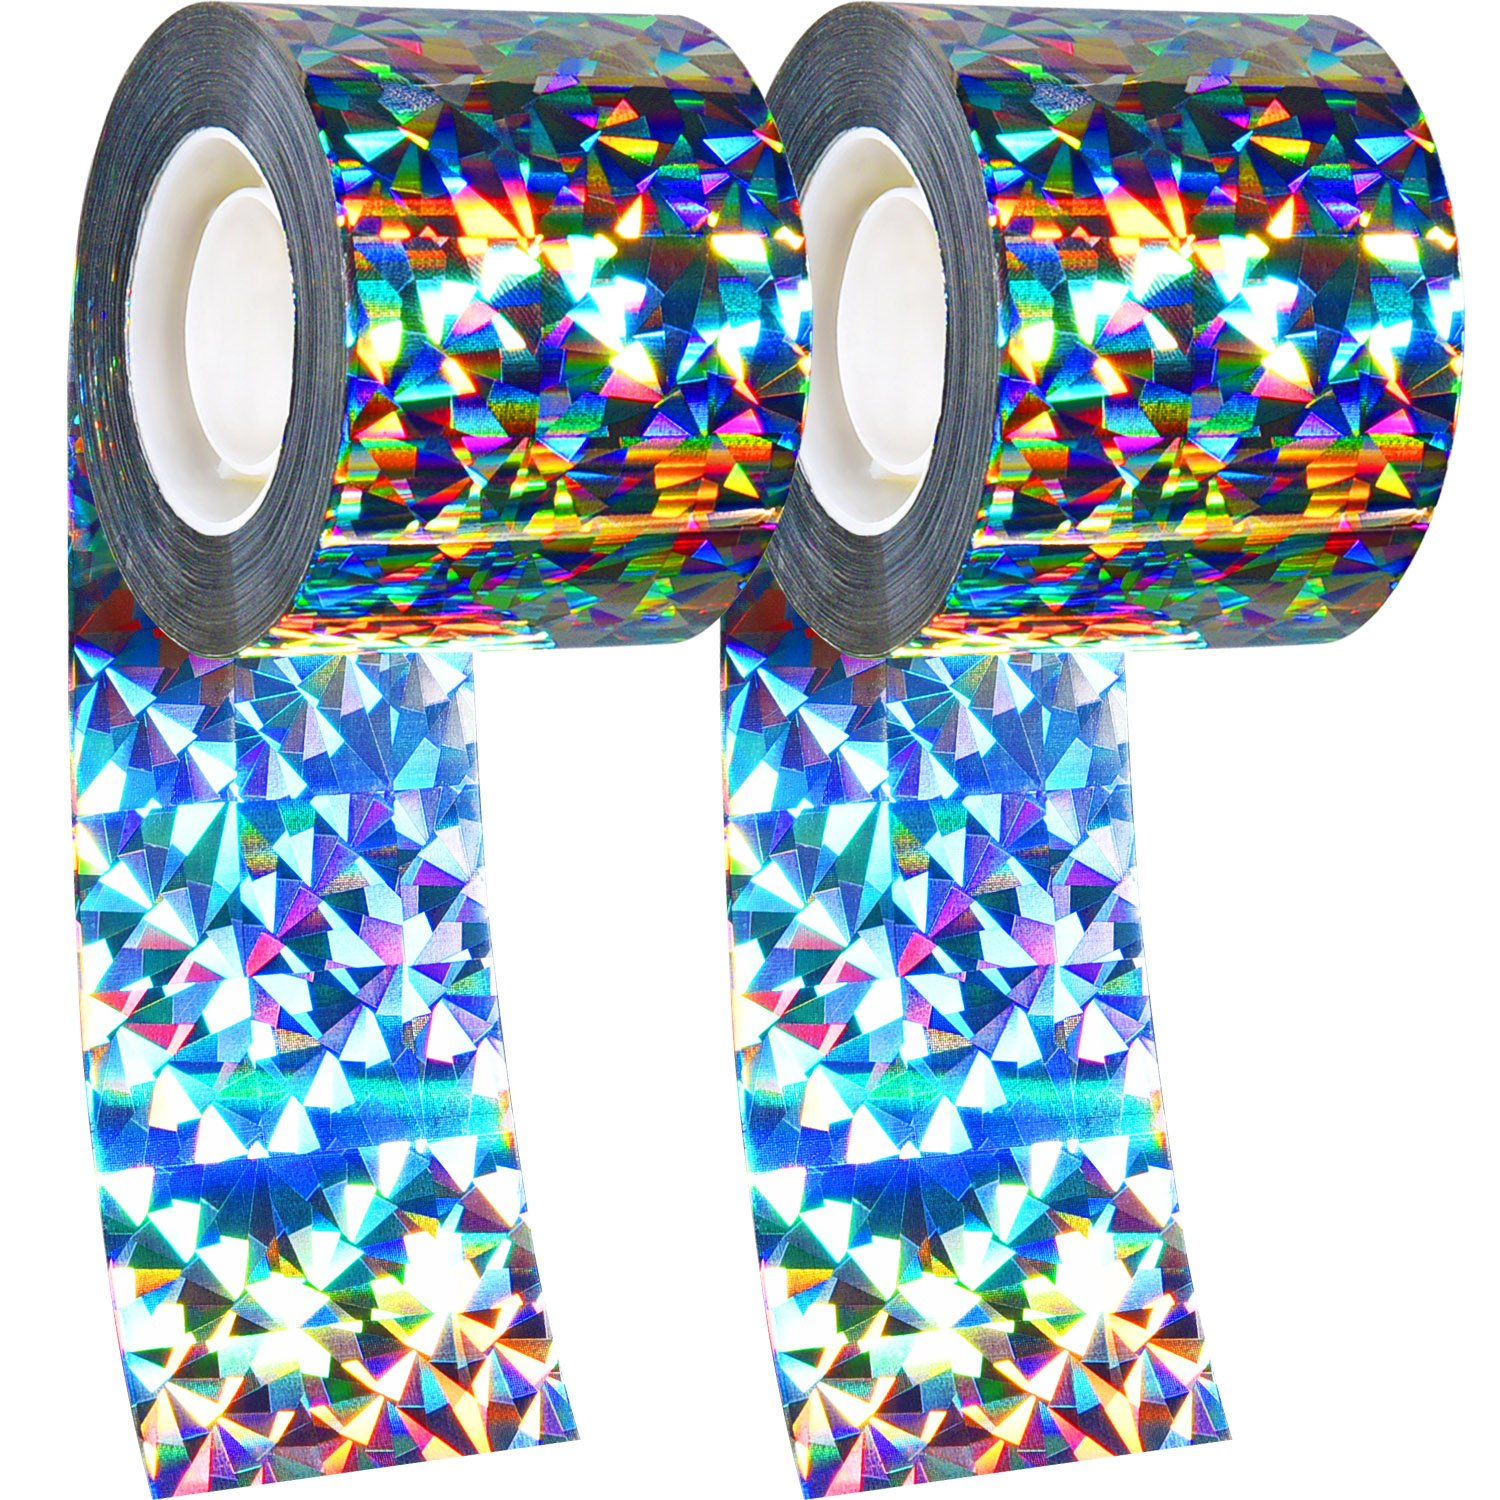 565 Feet Long in Total 2 Pack Bird Repellent Device Bird Deterrent Tape Double-sided Reflective Scare Bird Tape for Home Garden and Farm